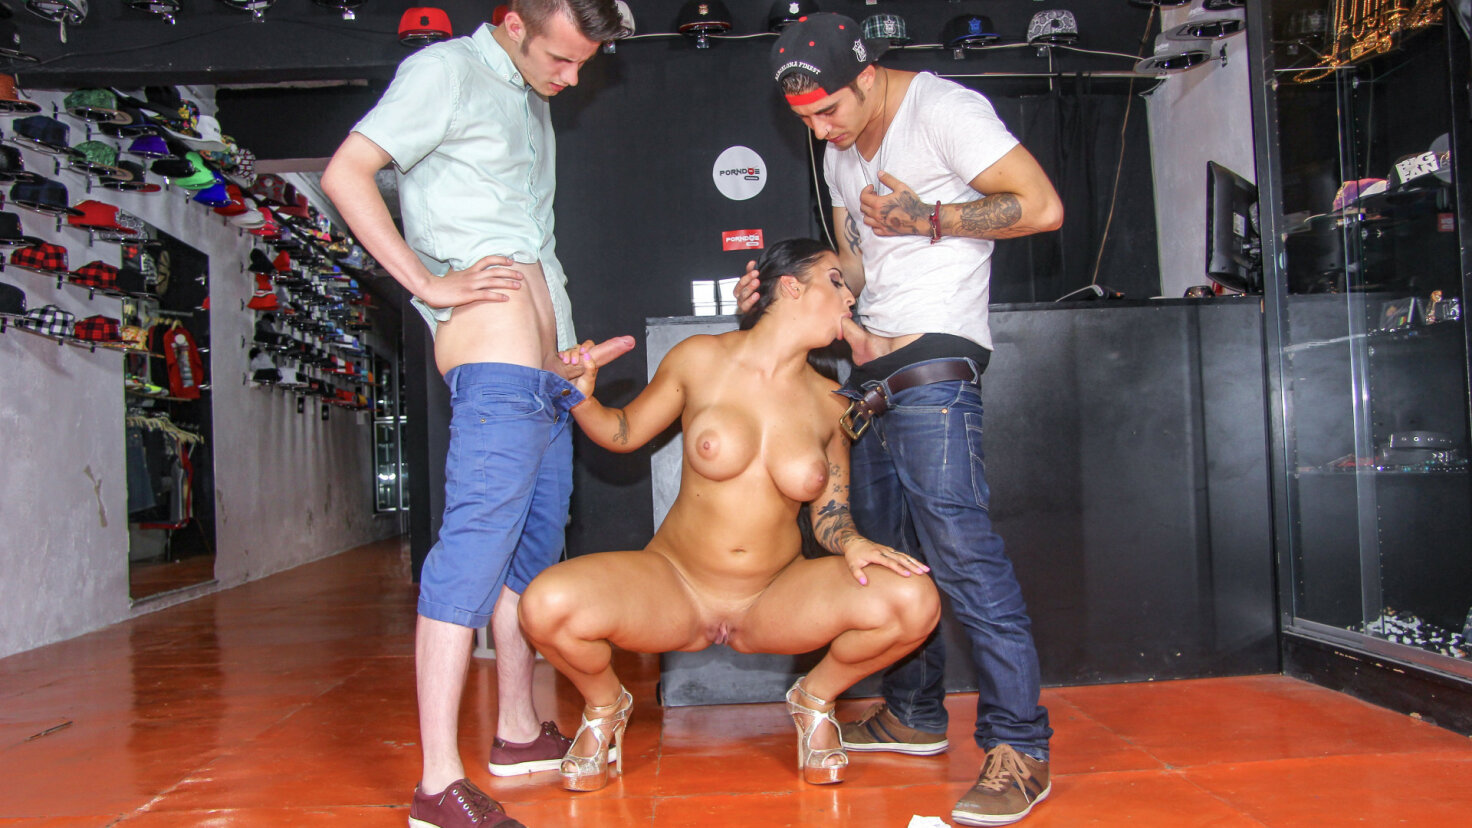 Busty British brunette gets shared by two lucky dudes in hardcore threesome